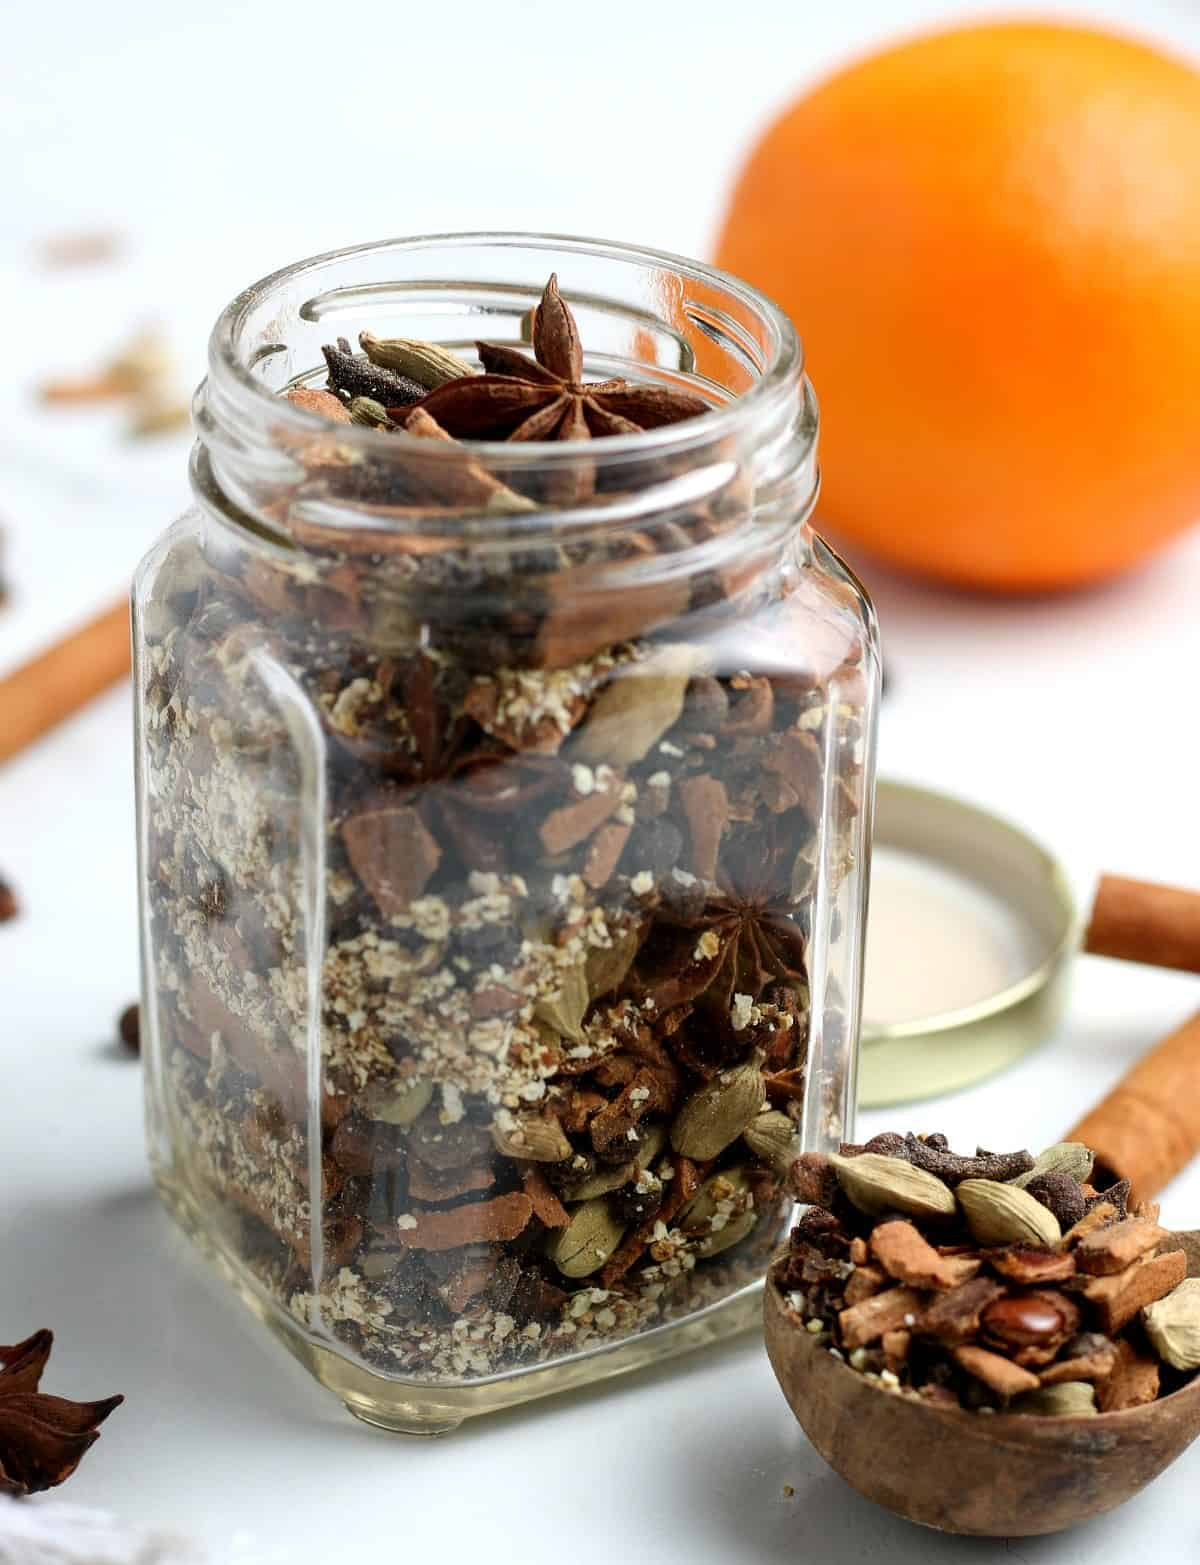 A spice jar and scoop gilled with homemade mulling spice mix.